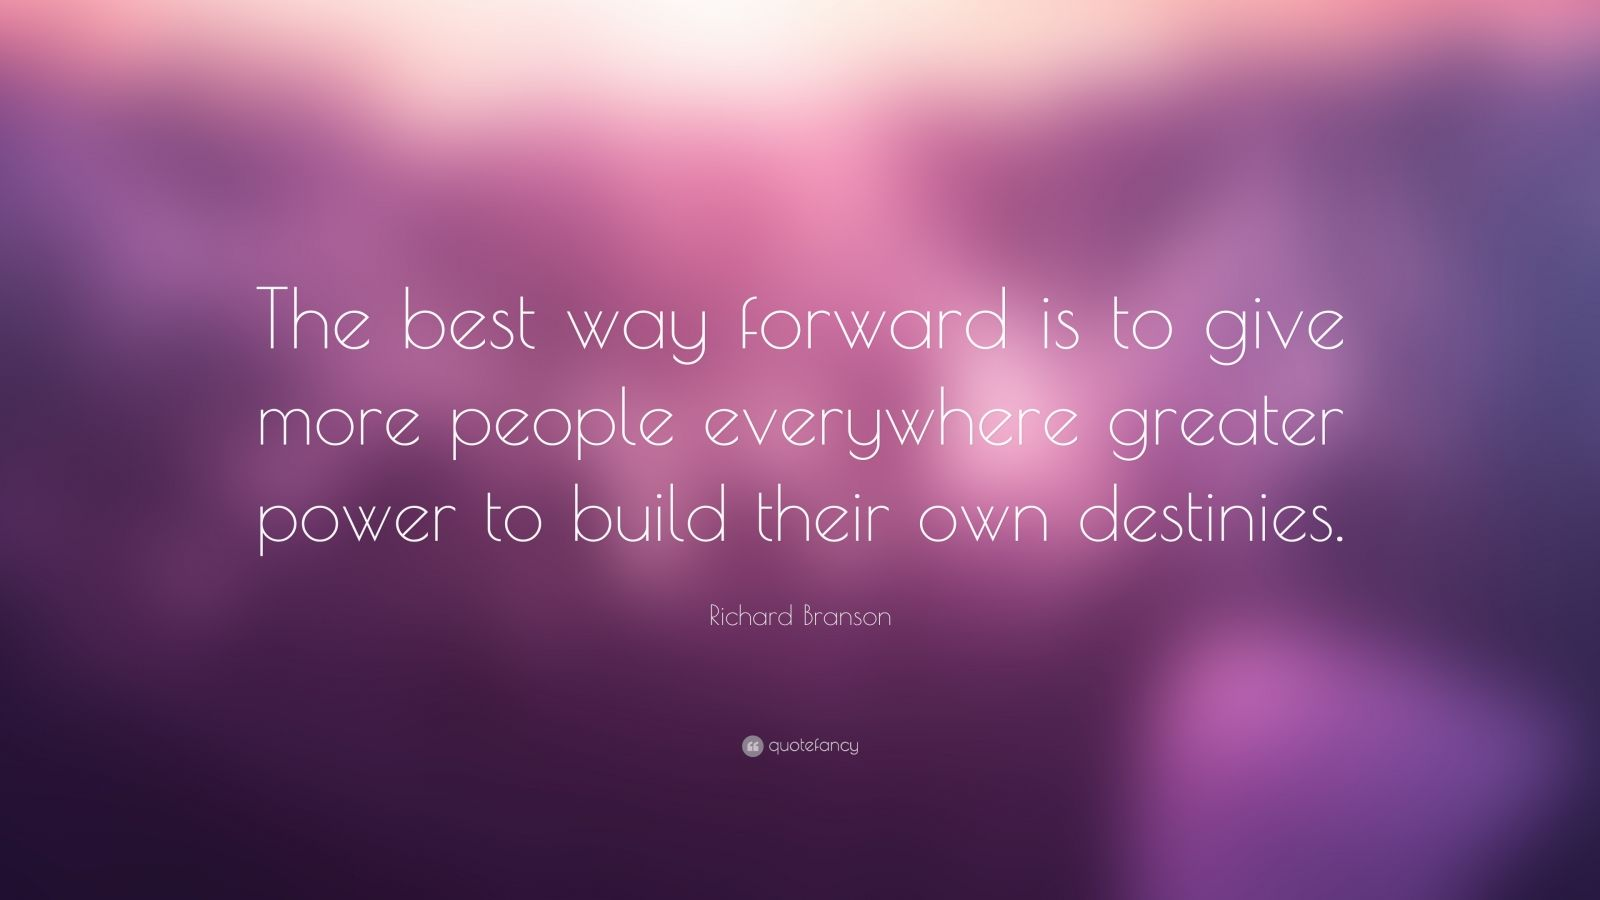 """Richard Branson Quote: """"The best way forward is to give more people everywhere greater power to build their own destinies."""""""